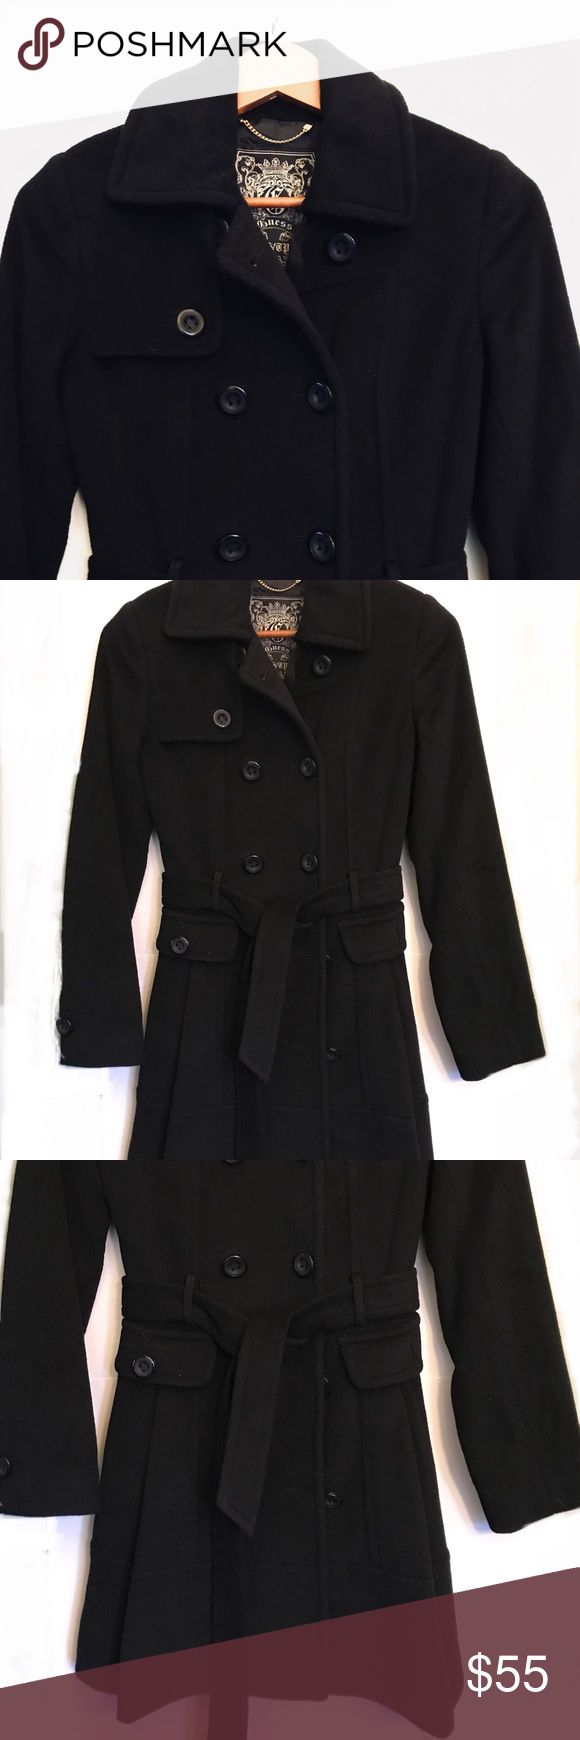 GUESS Long Pea Coat Long black pea coat from GUESS with tie belt . Never worn🌟 Guess Jackets & Coats Pea Coats